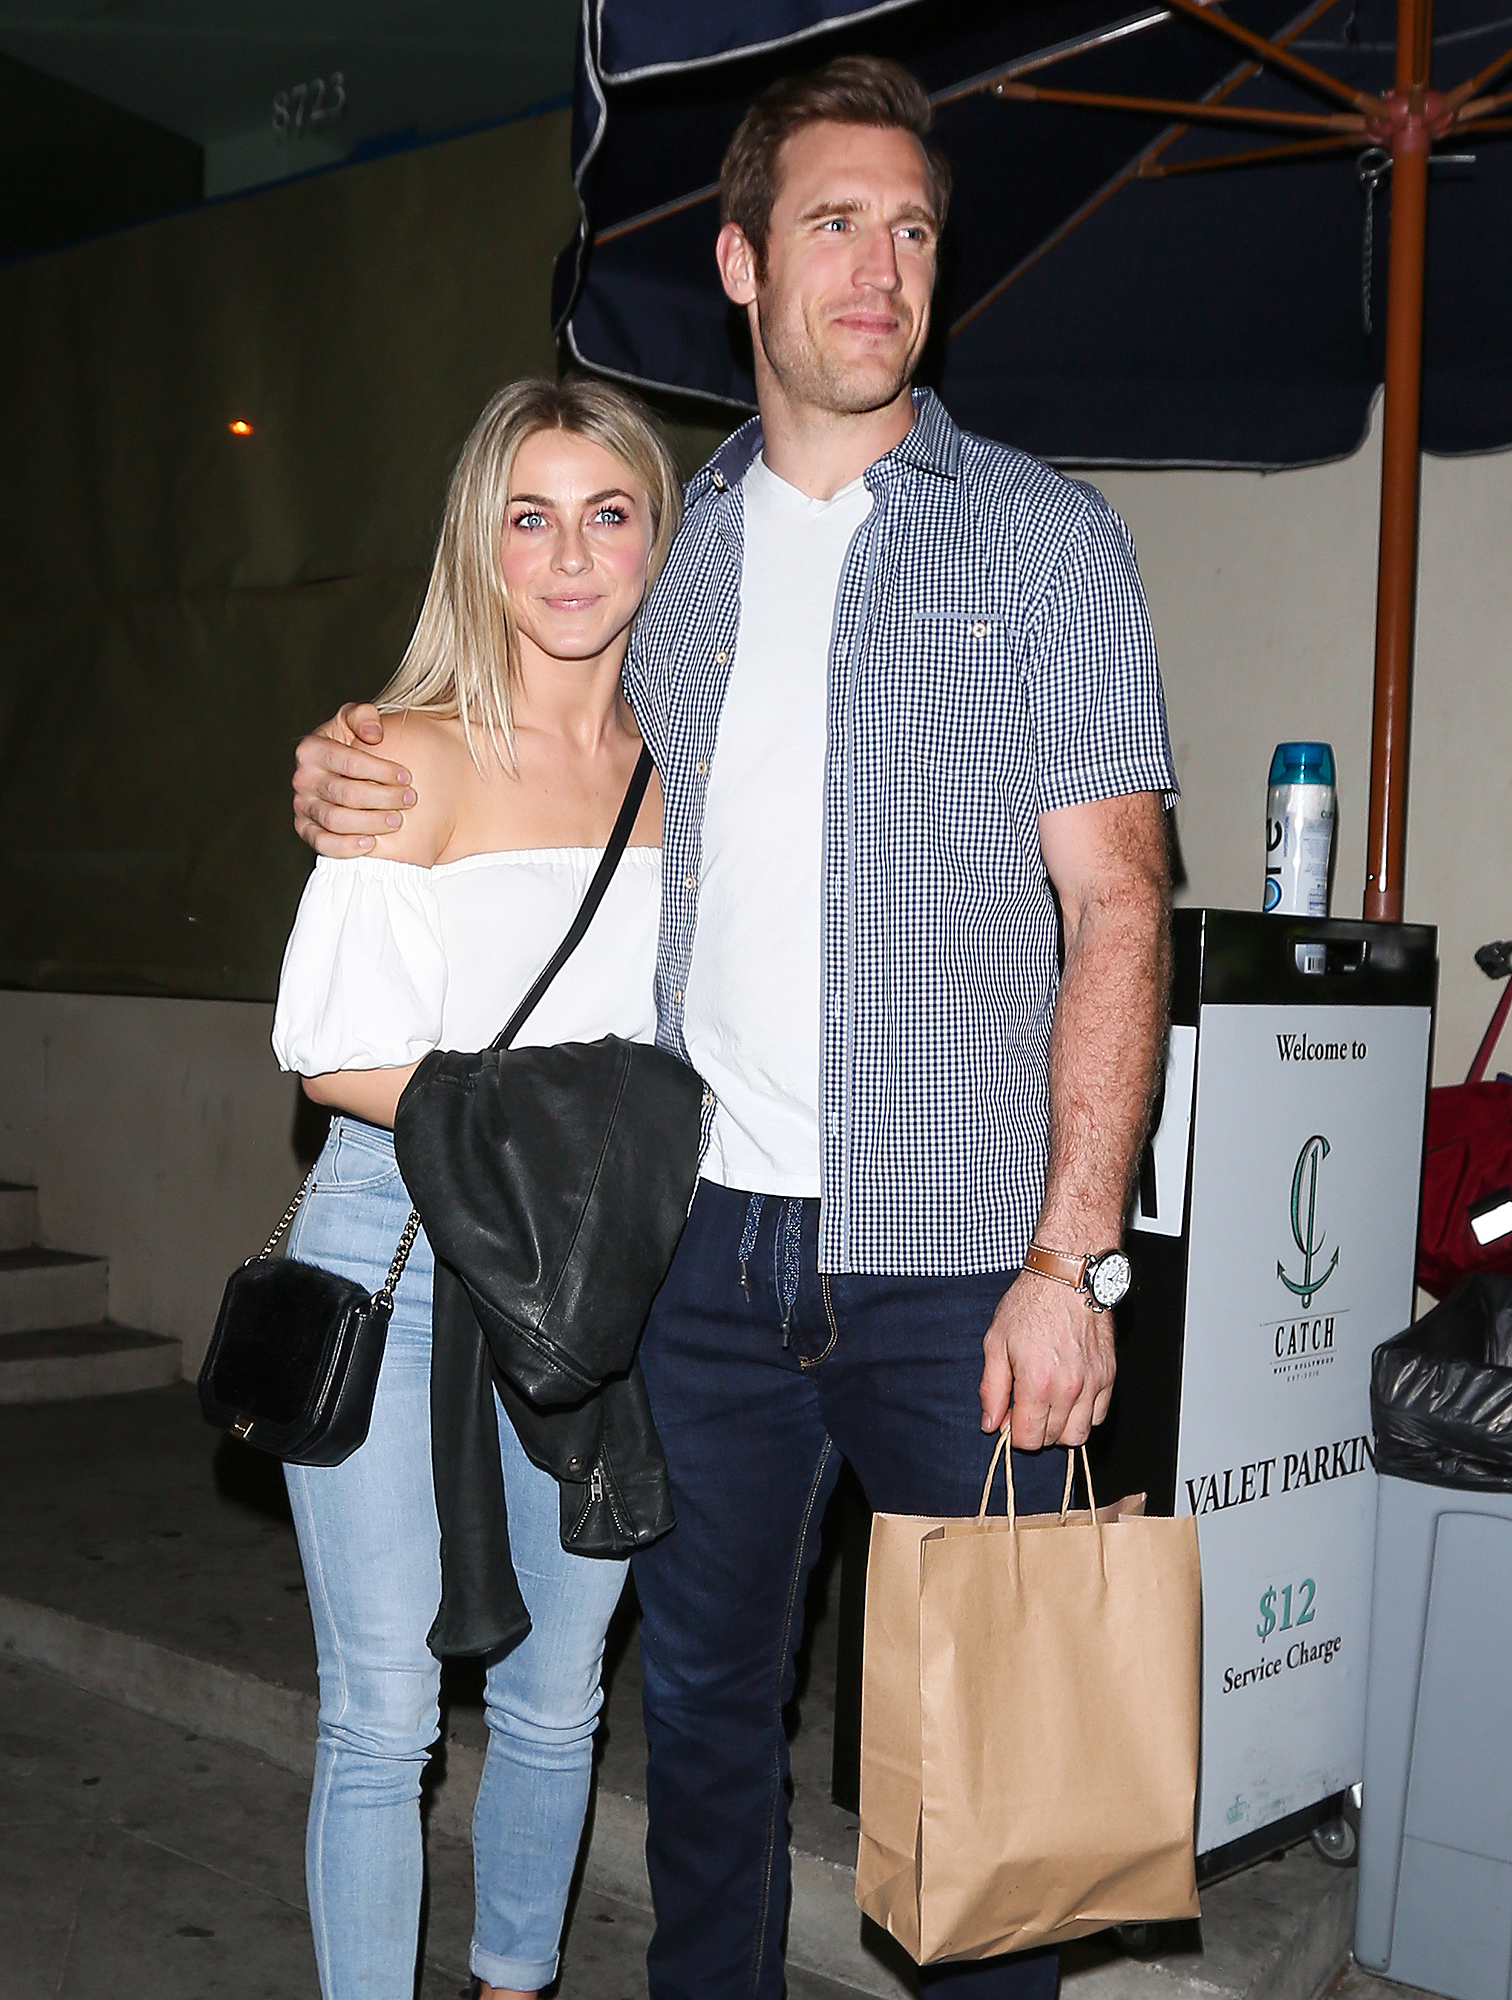 Julianne Hough and Brooks Laich dine at Catch restaurant together